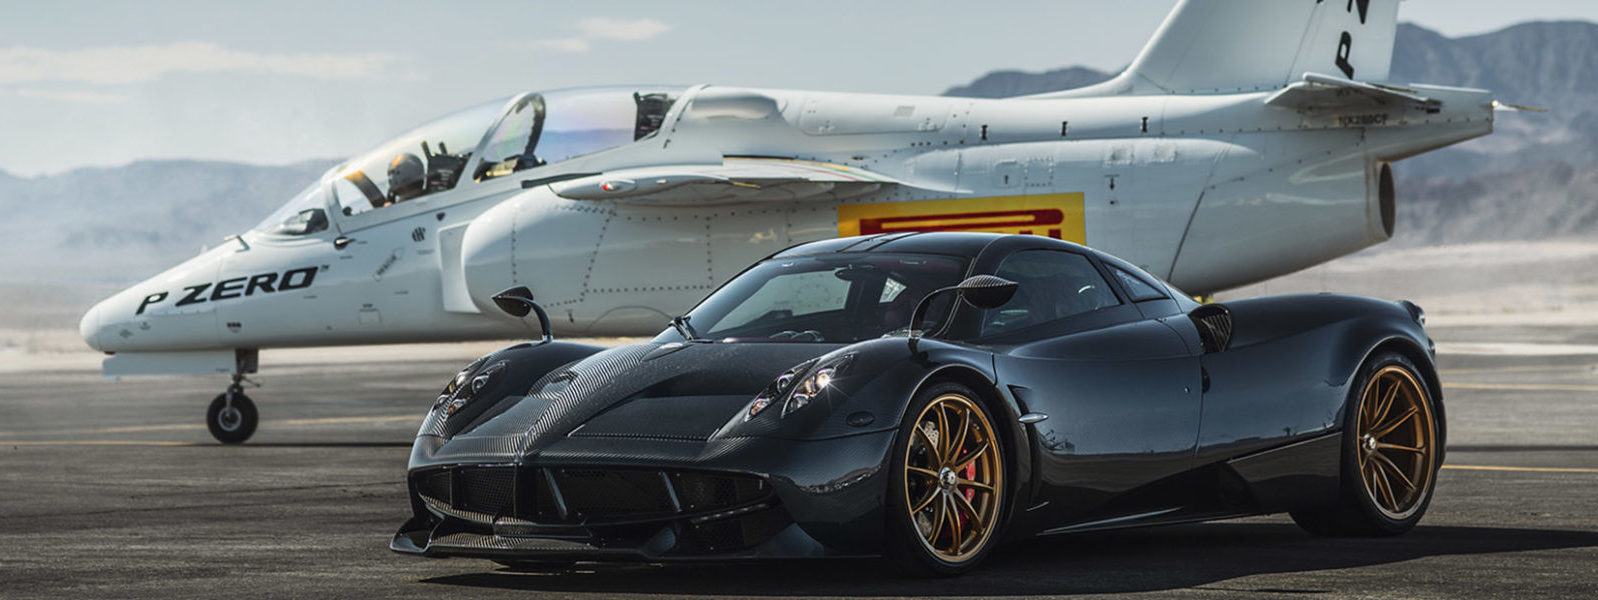 Photo of Spaghetti western: Pagani Huayra Vs. Siai-Marchetti S-211